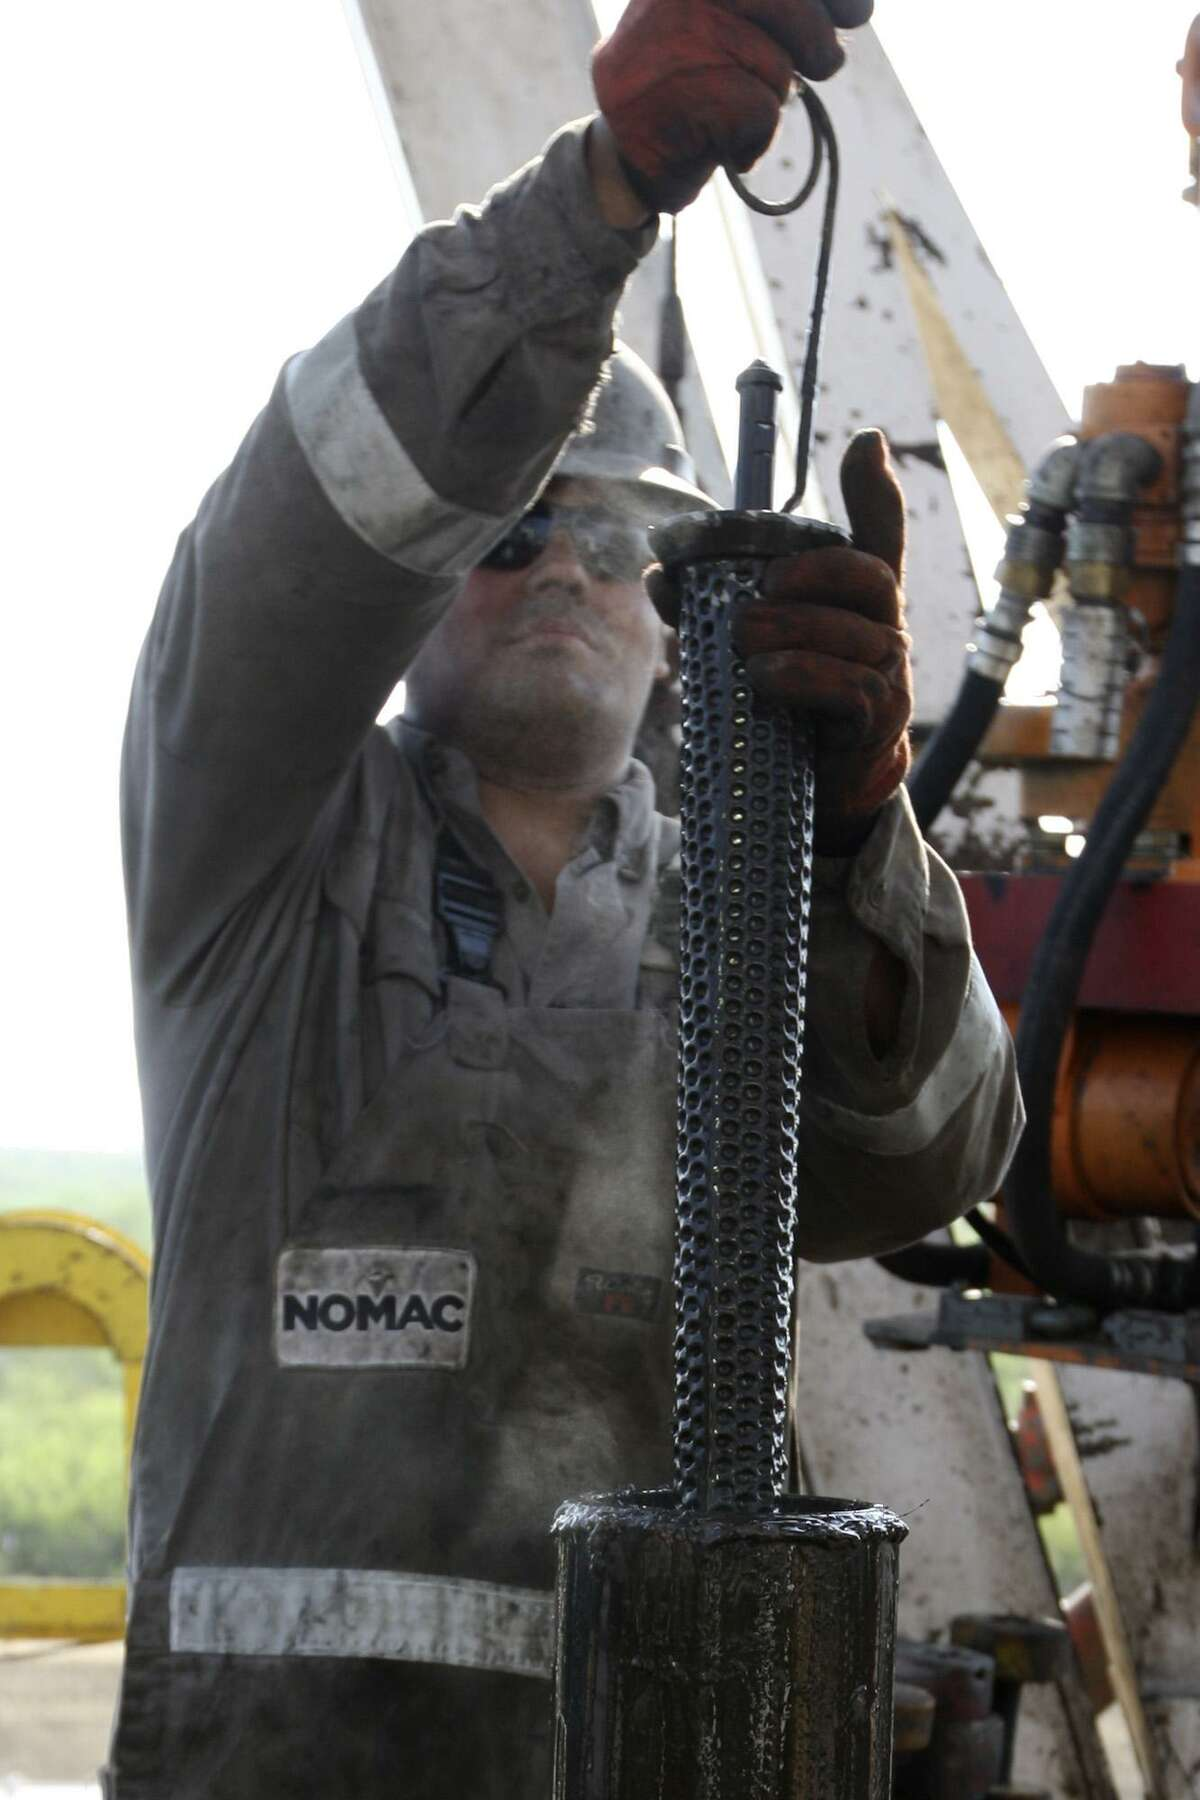 METRO -- Floorhand, Draden Copepland, cleans a filter on a drilling rig at a site near Carriso Springs on a well owned by Chesapeake Energy, Thursday, April 5, 2012. Jerry Lara/San Antonio Express-News